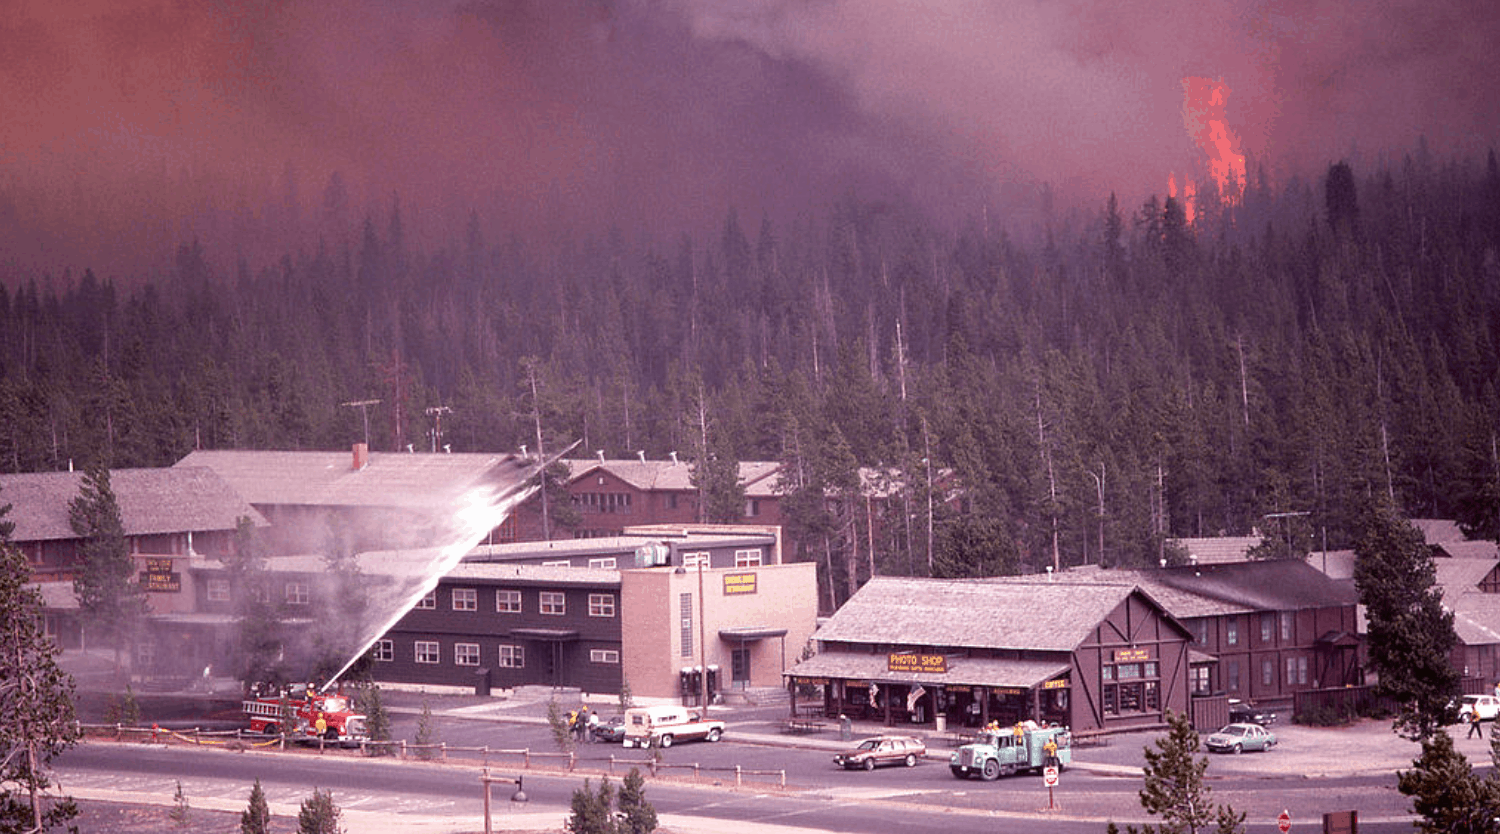 Flames approaching the Old Faithful Lodg, with water being sprayed in the foreground